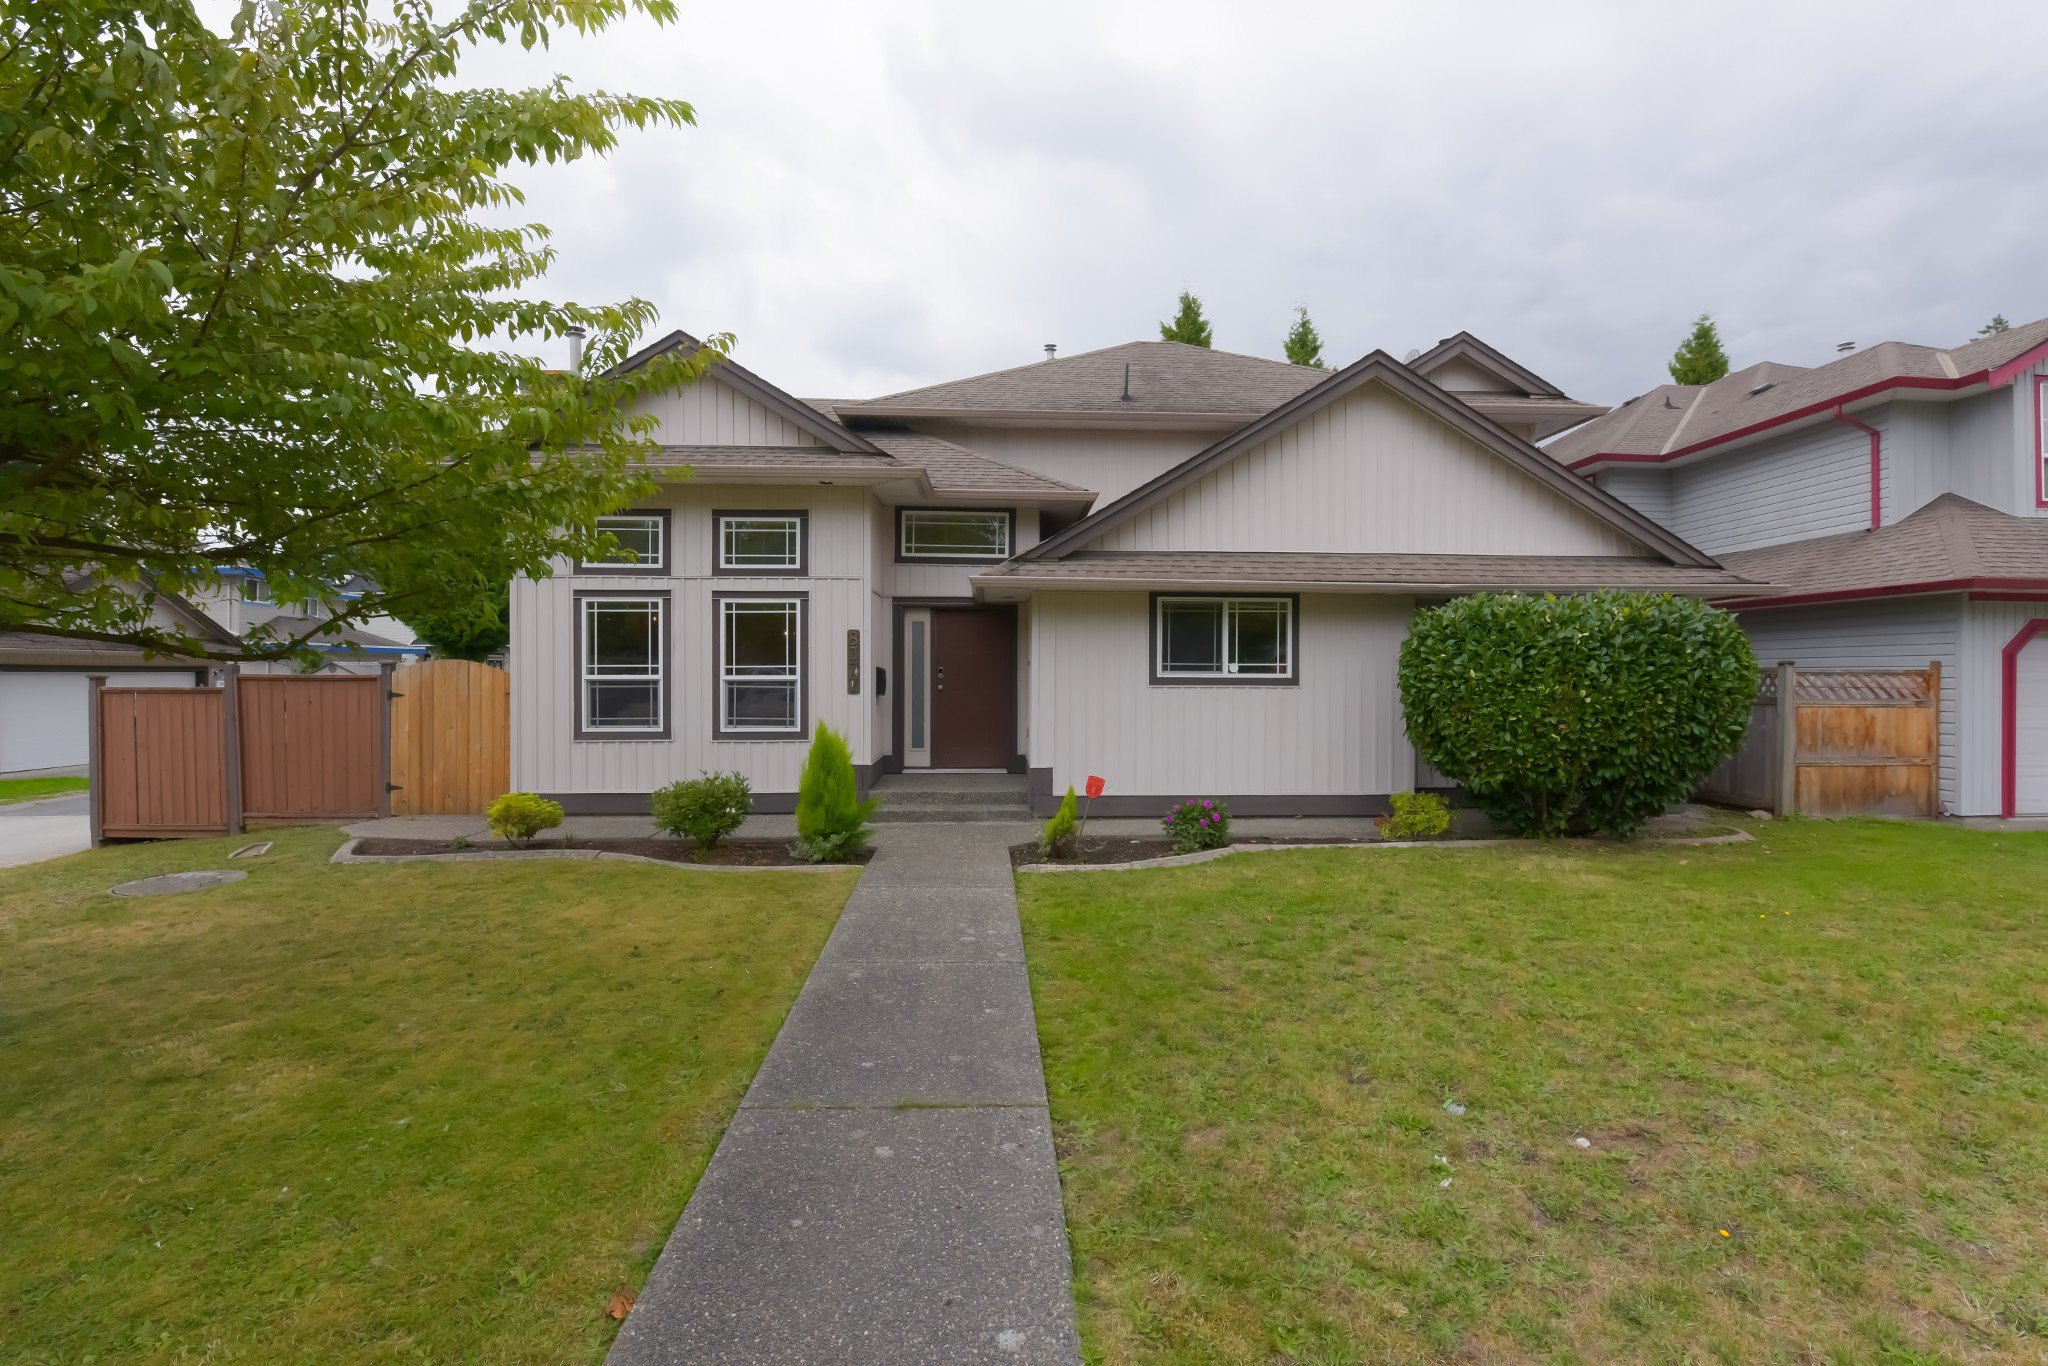 Main Photo: 8377 158 Street in Surrey: Fleetwood Tynehead House for sale